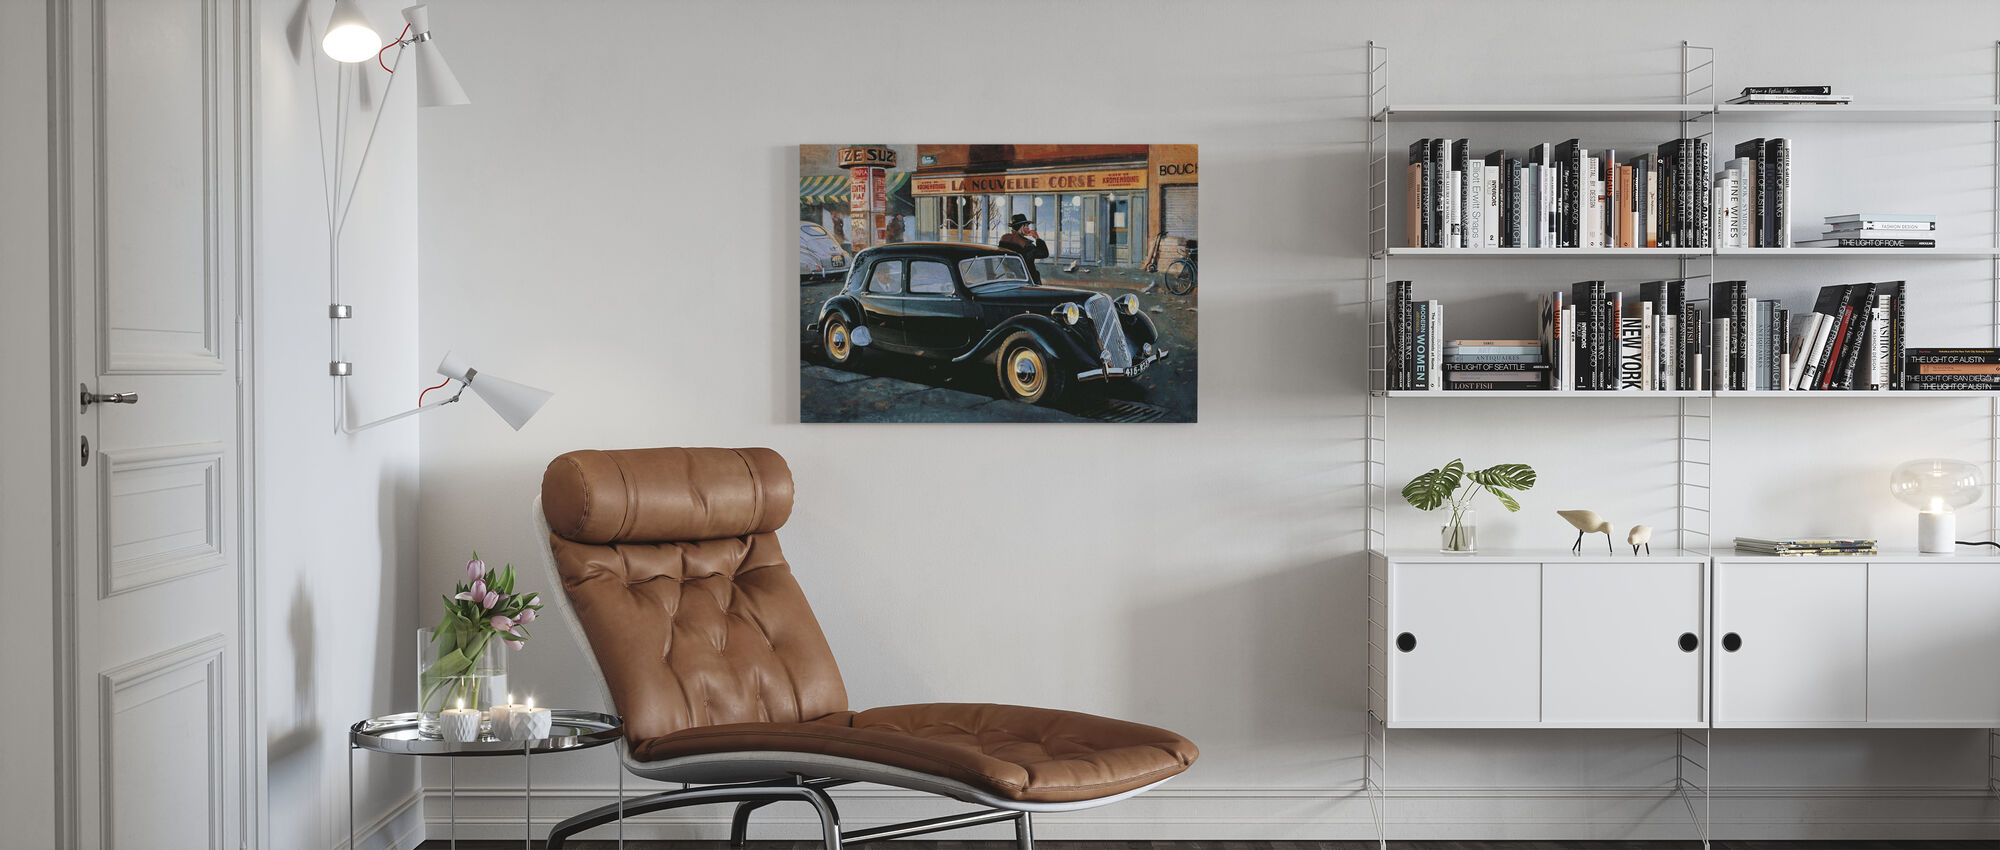 B15 in Paris - Canvas print - Living Room